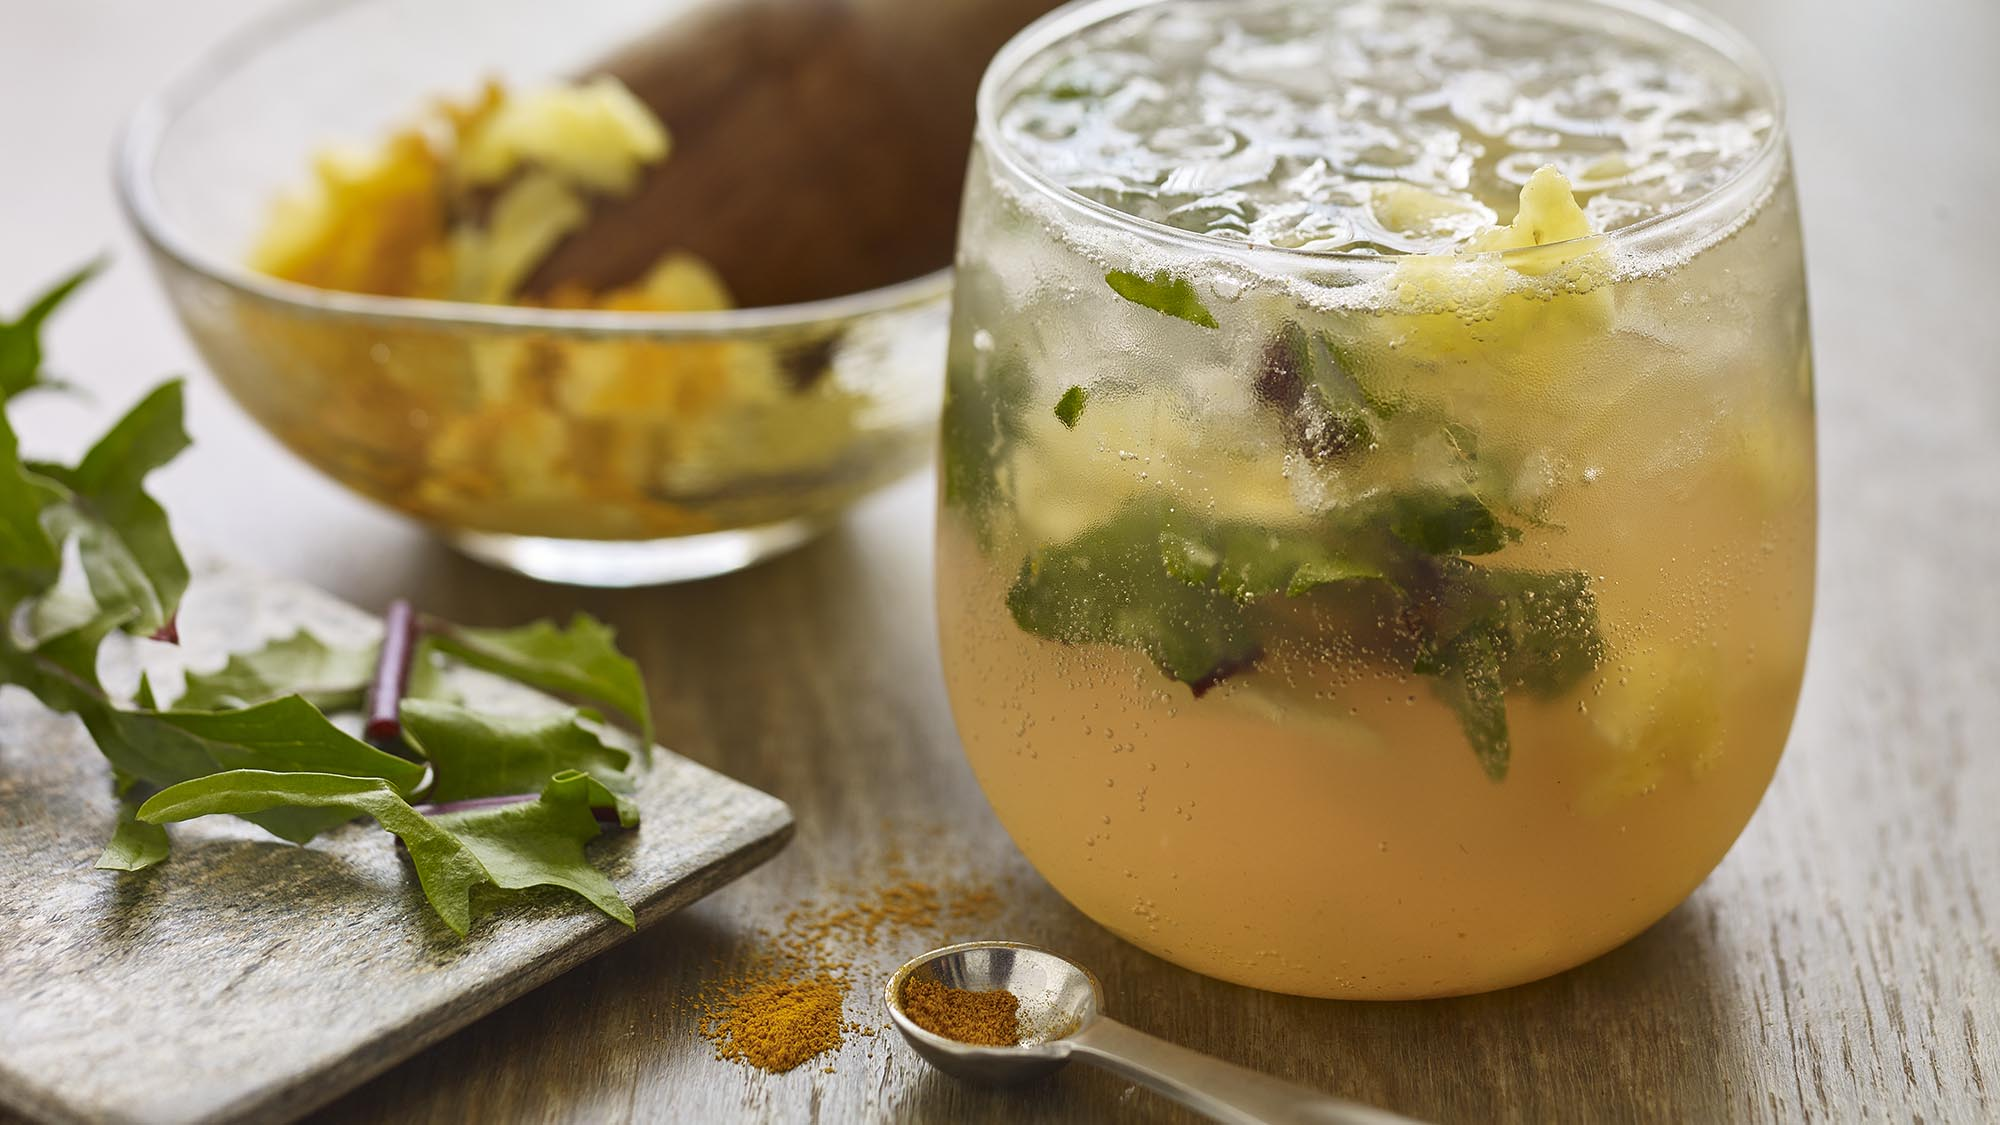 pineapple_turmeric_mocktail_with_muddled_dandelion_greens_2000x1125.jpg